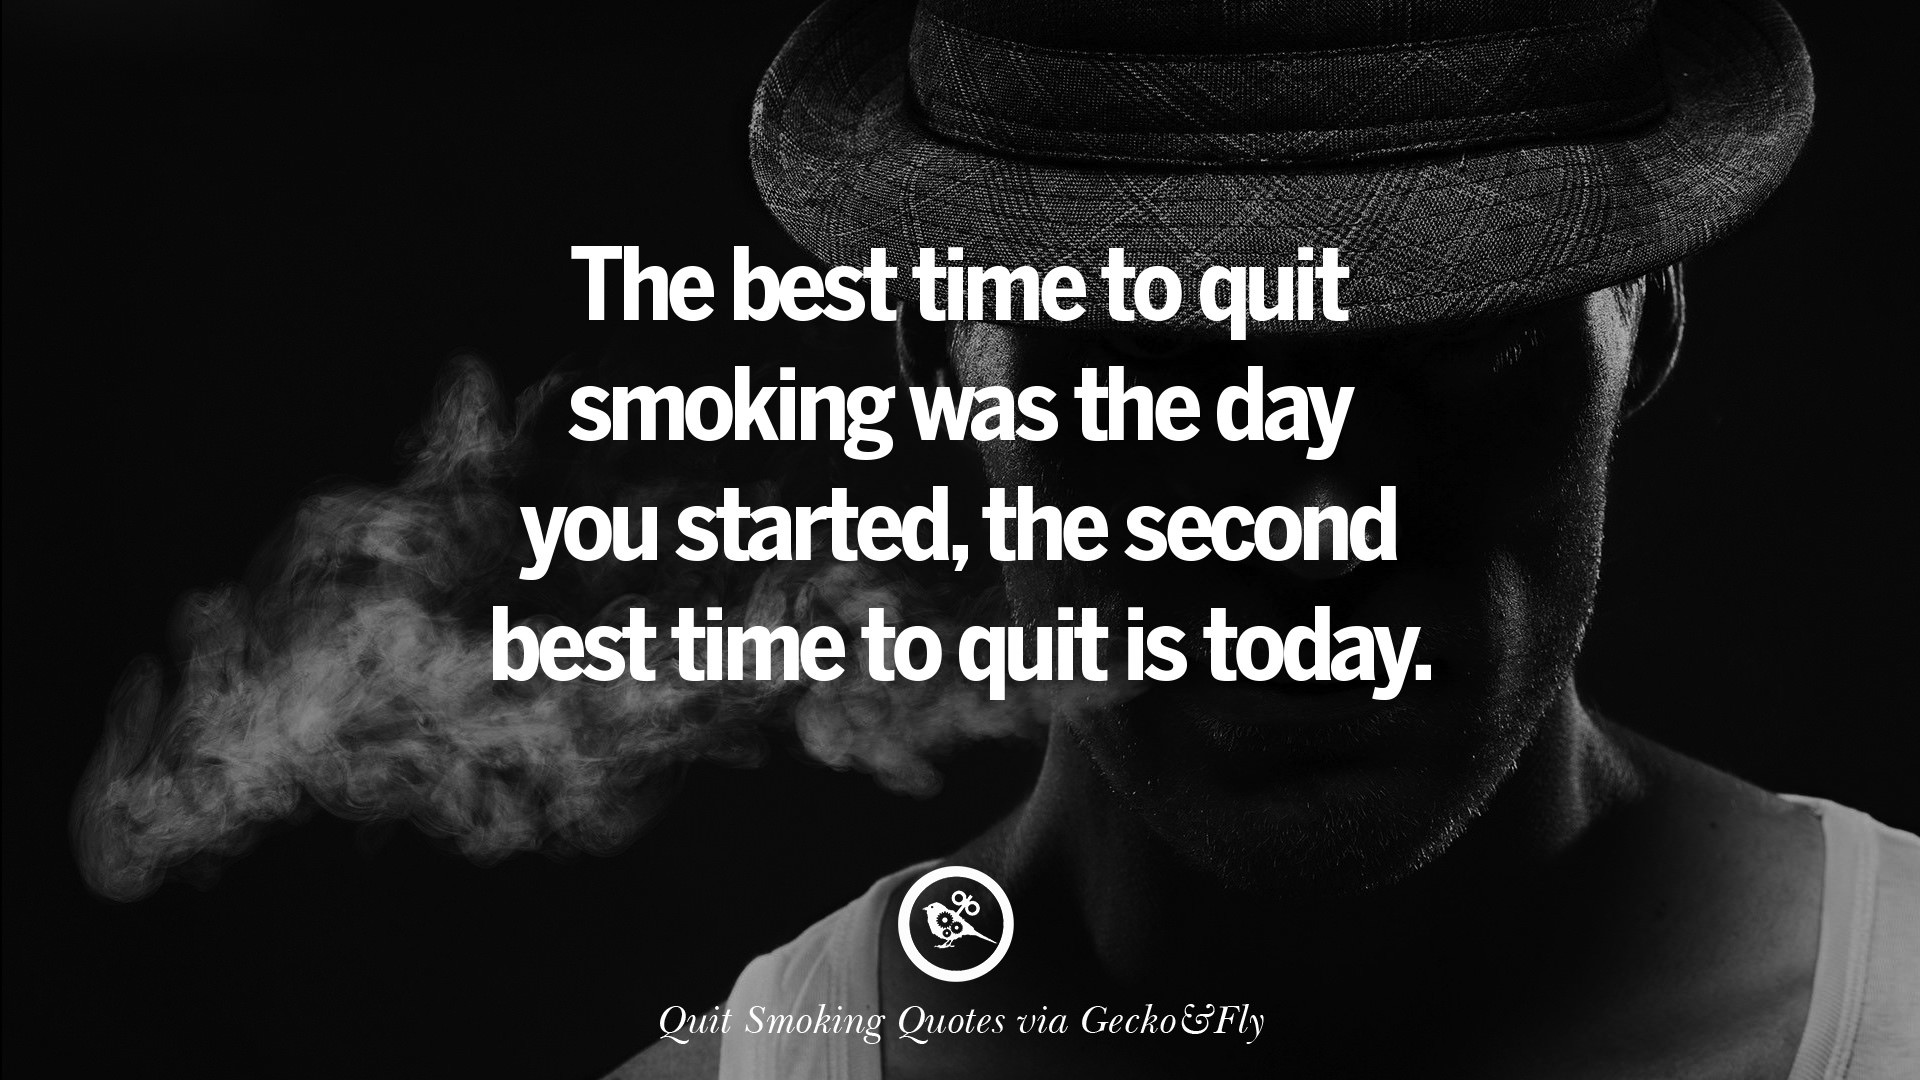 1920x1080 The best time to quit smoking was the day you started, the second best time  to quit is today.